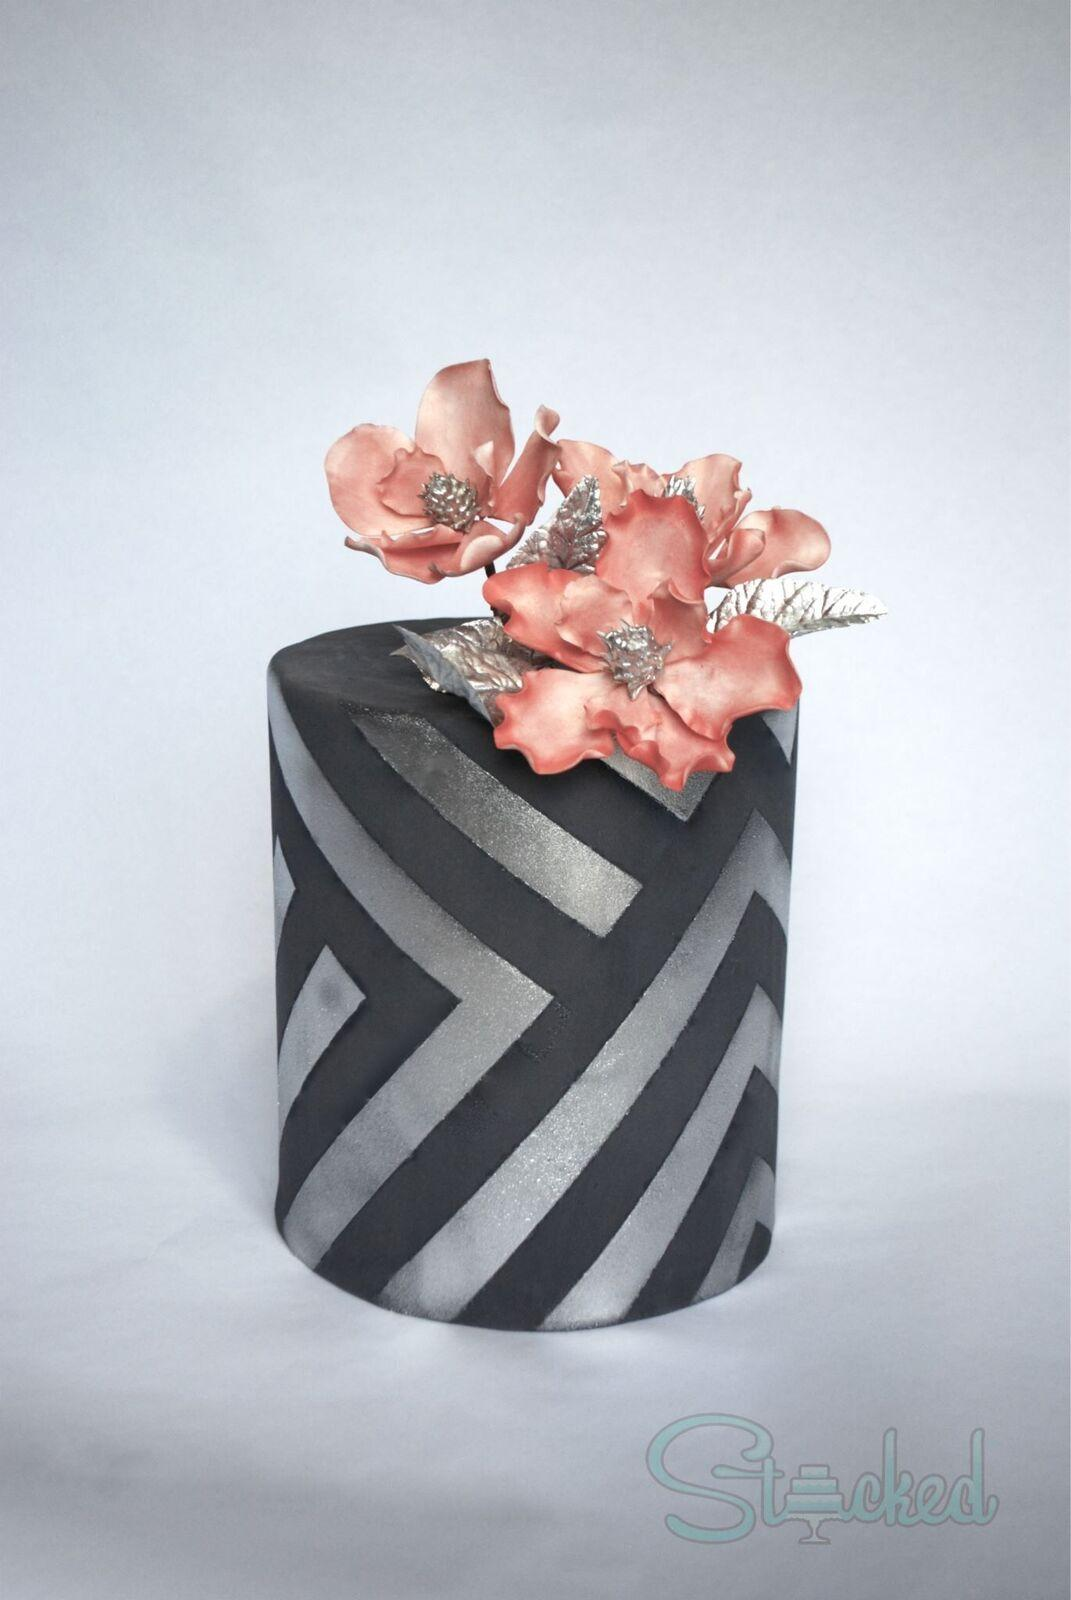 Silver and black chevron patterned wedding cake